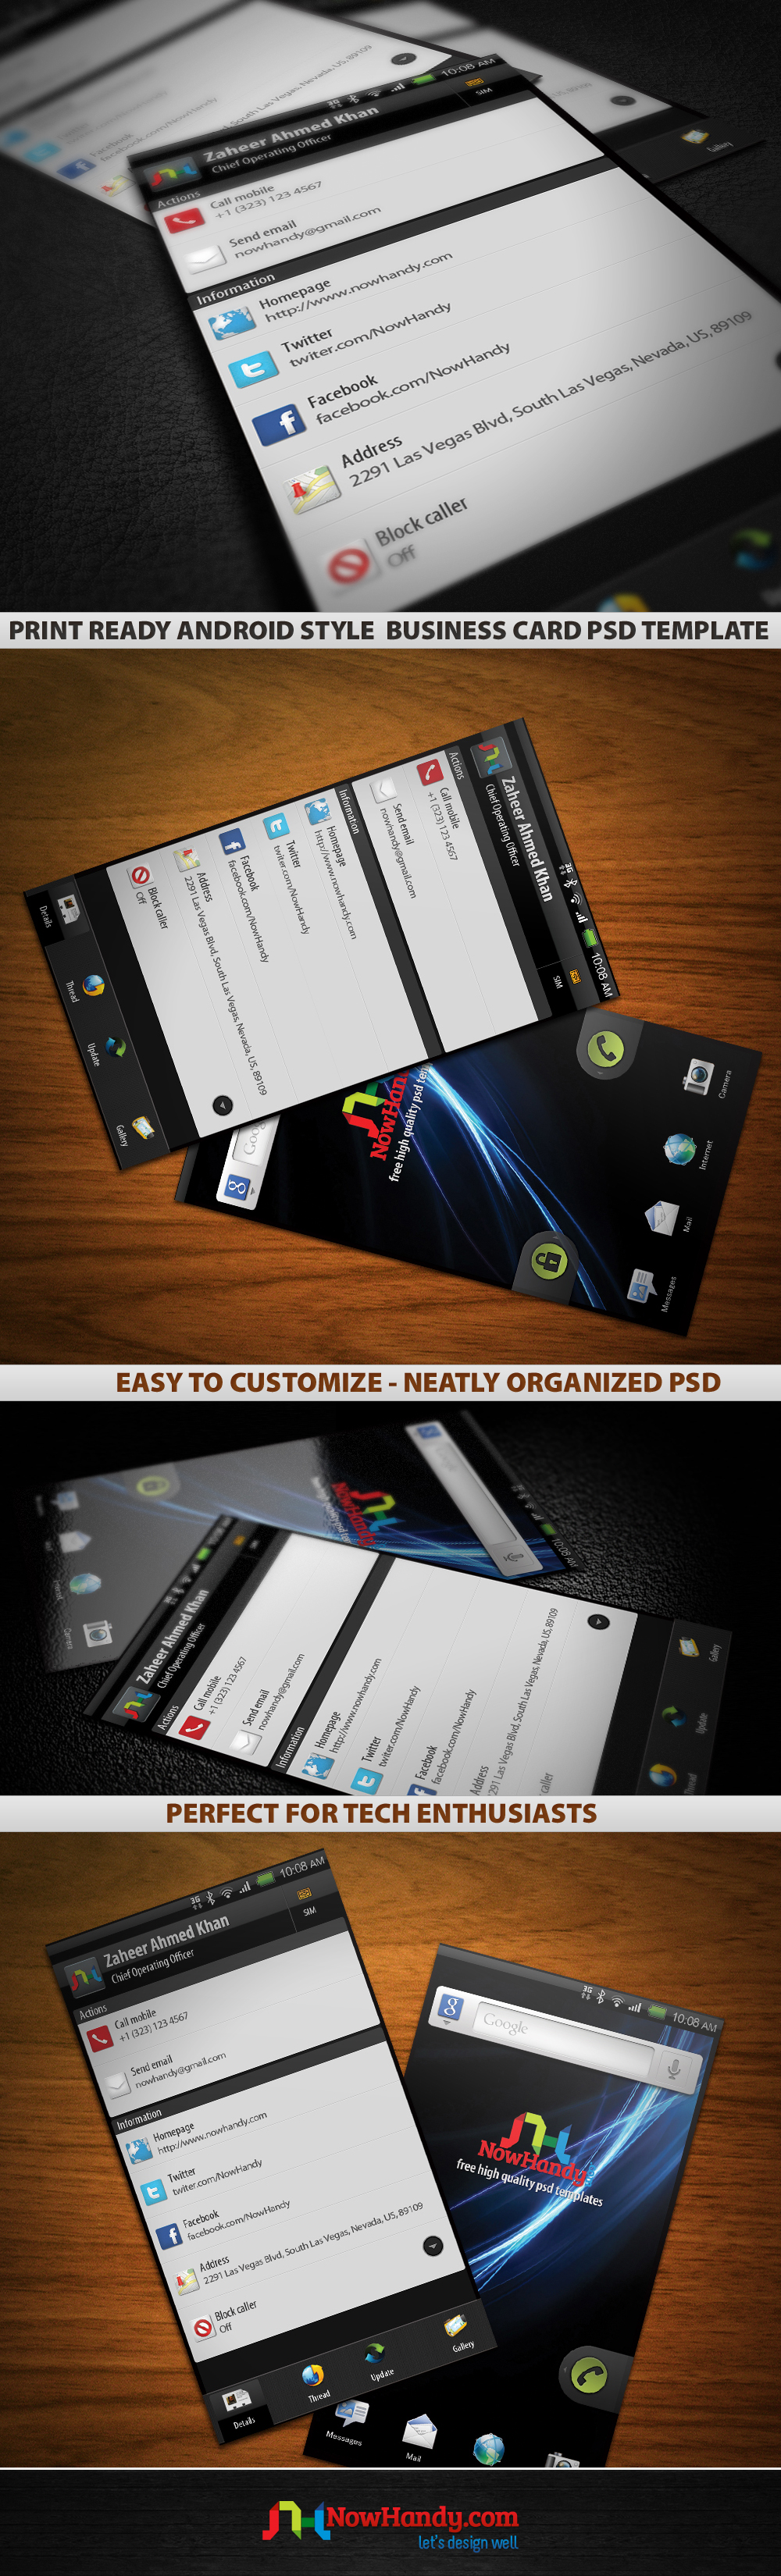 Free Print Ready Android Based Business Card Template Design [PSD ...